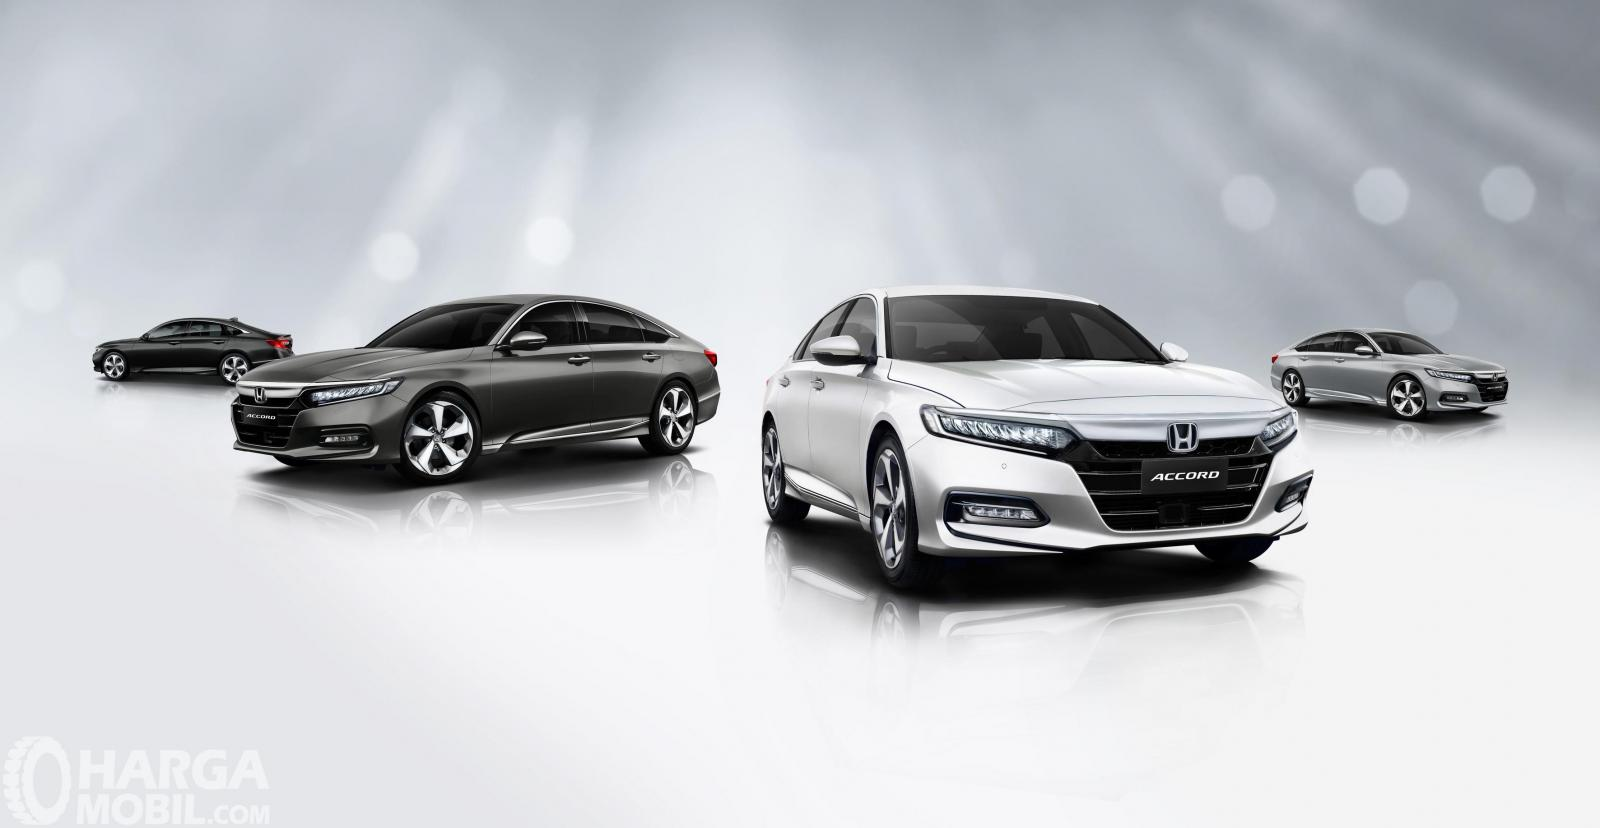 Warna bodi Honda Accord 2019